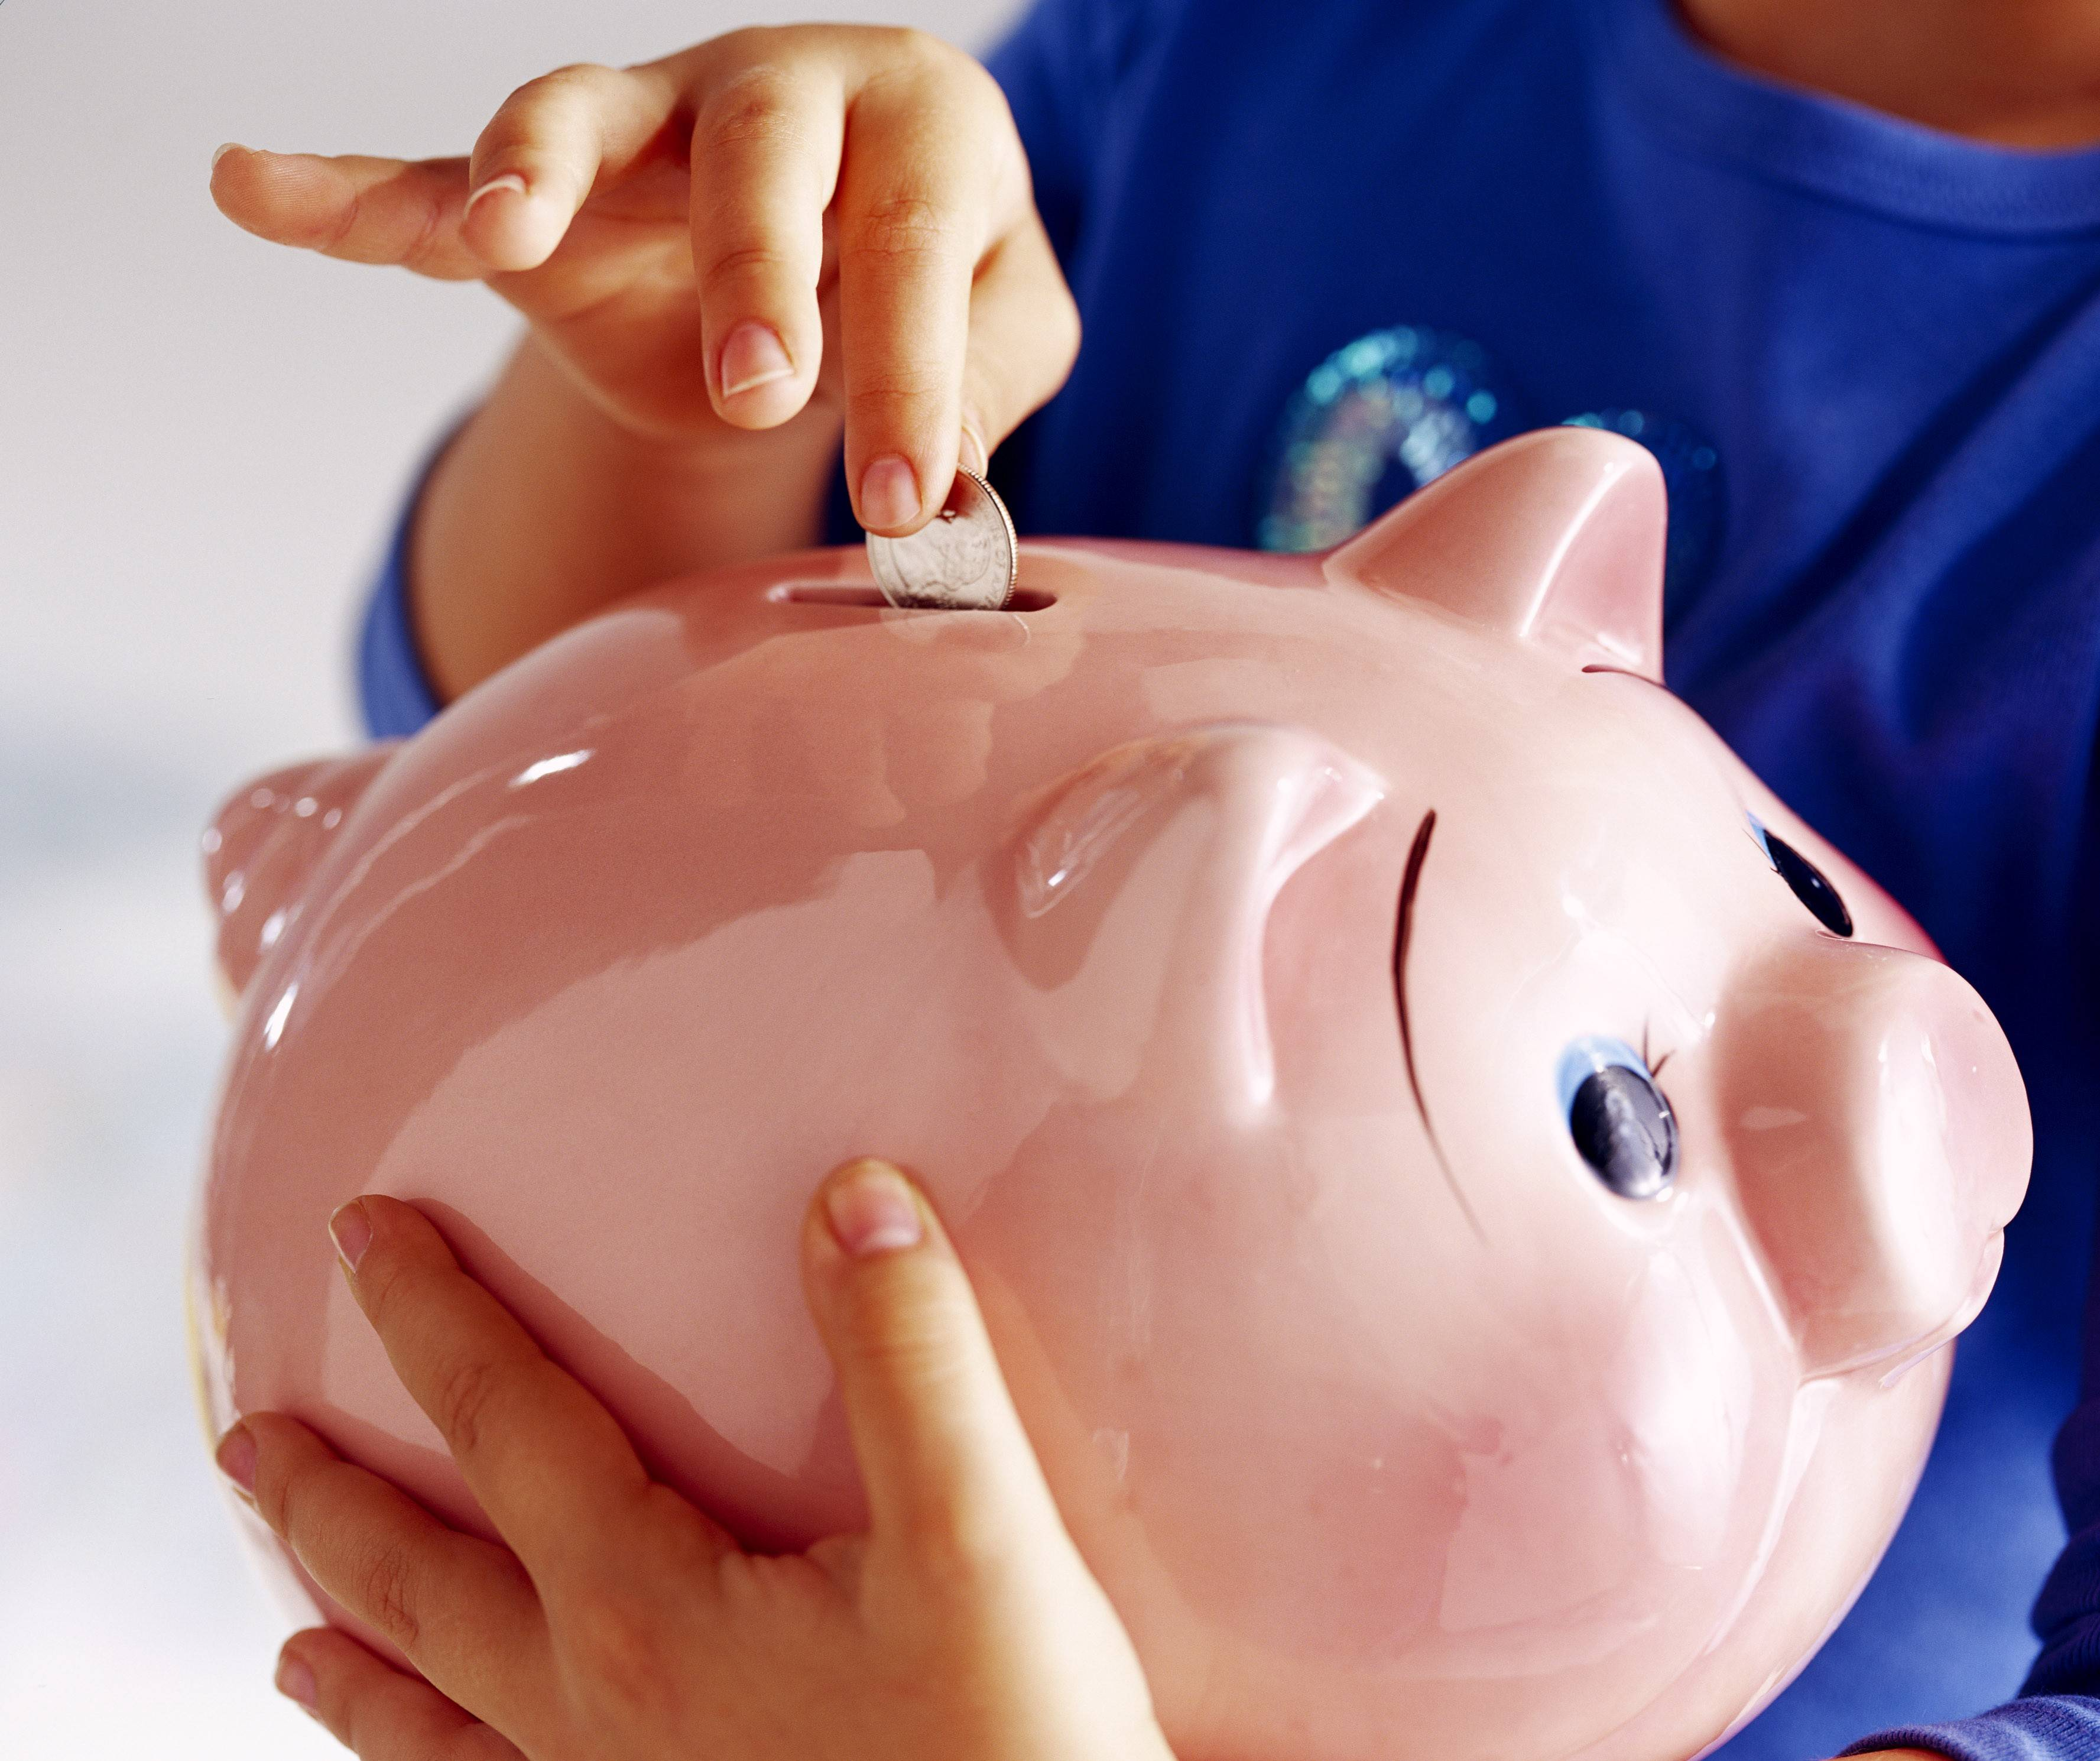 Just over one in four Americans don't have any emergency savings, according to a June phone survey commissioned by personal finance portal Bankrate.com. And among those who have money put away, half have saved less than three months' expenses.